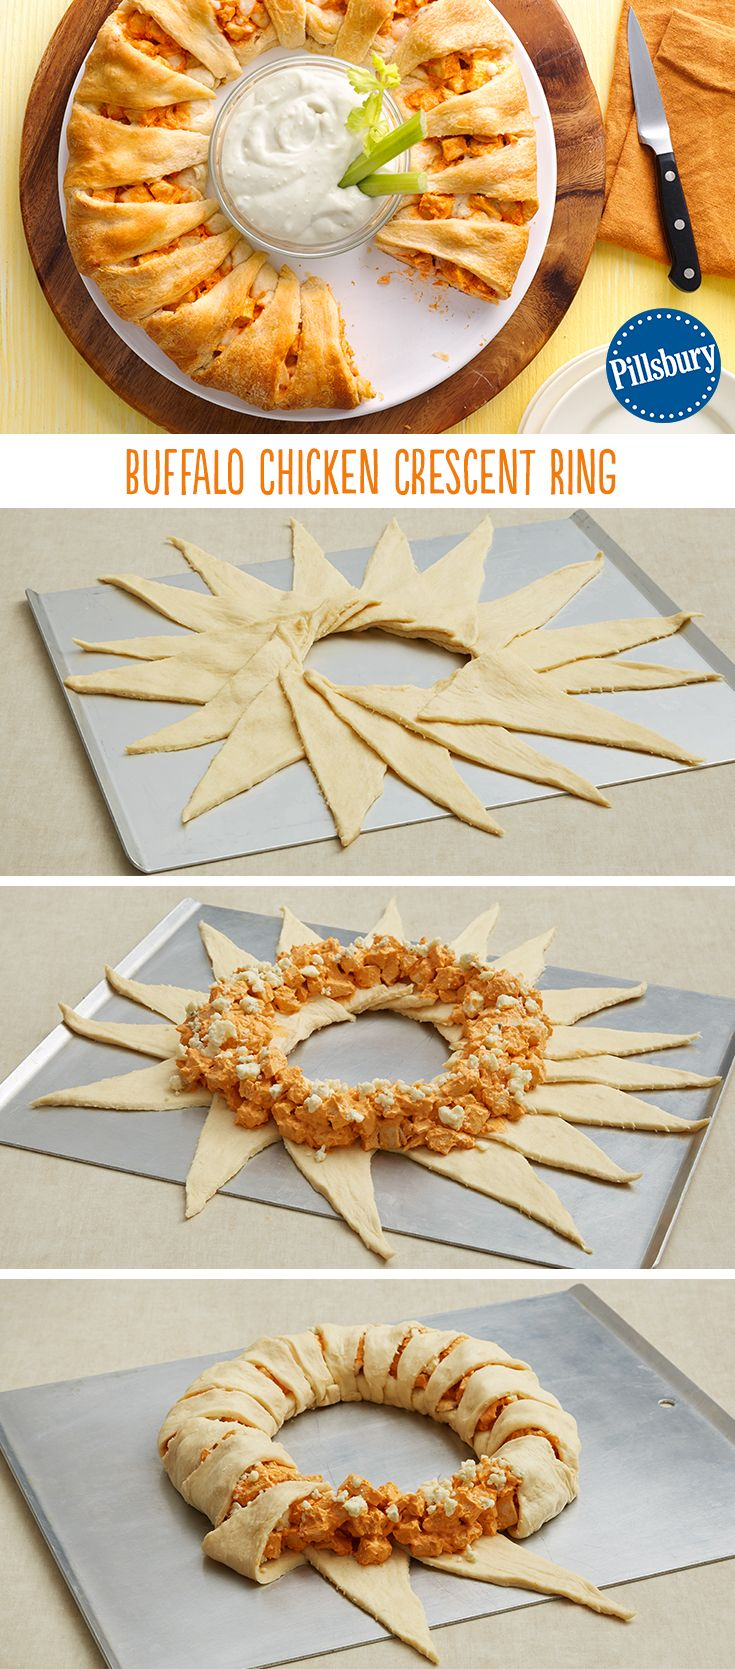 Buffalo Chicken Crescent Ring #gamedayfood